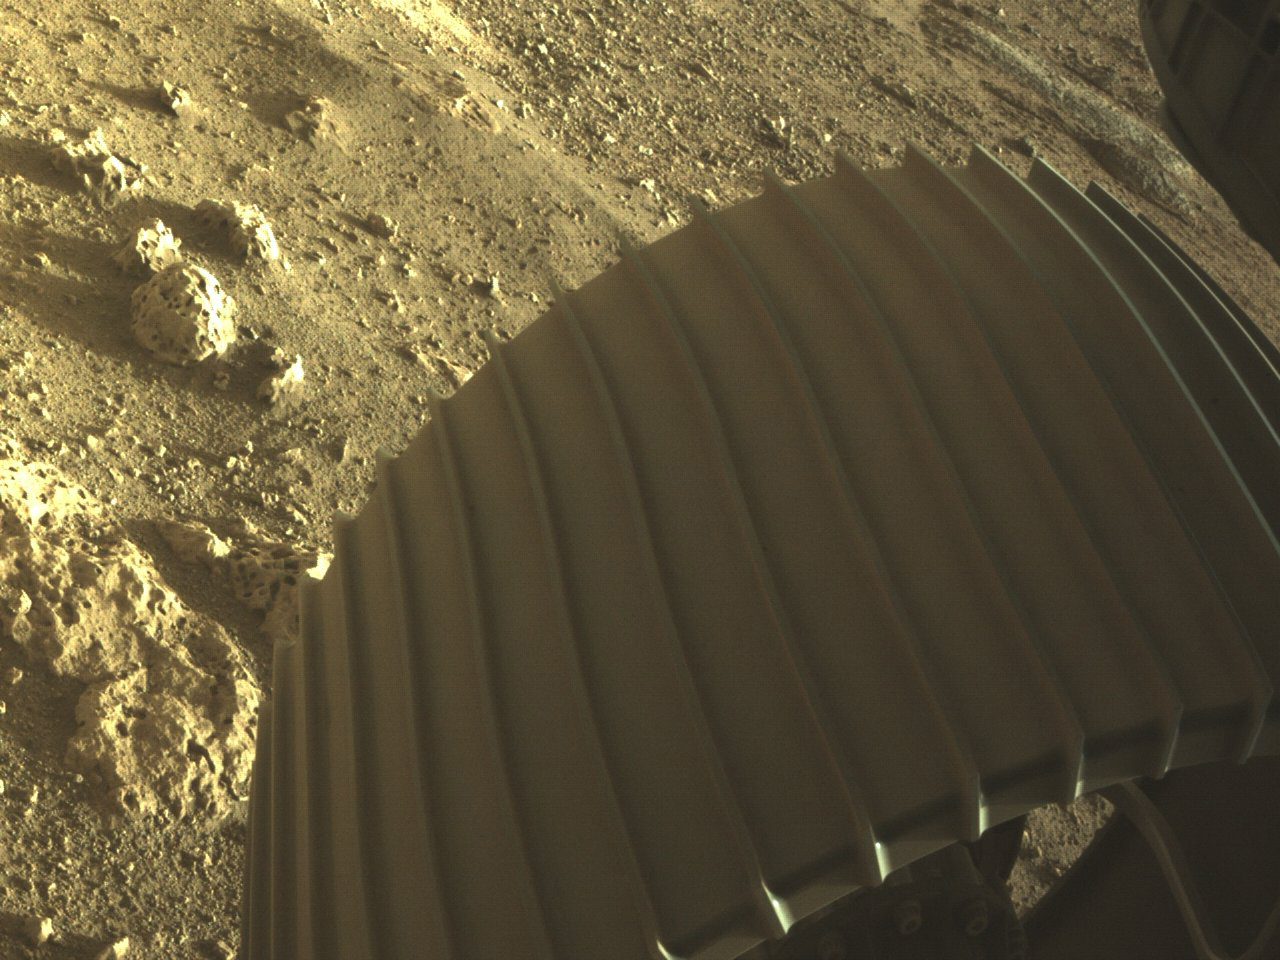 This photo provided by NASA shows one of the six wheels on the Perseverance Mars rover, which landed on Feb. 18, 2021.